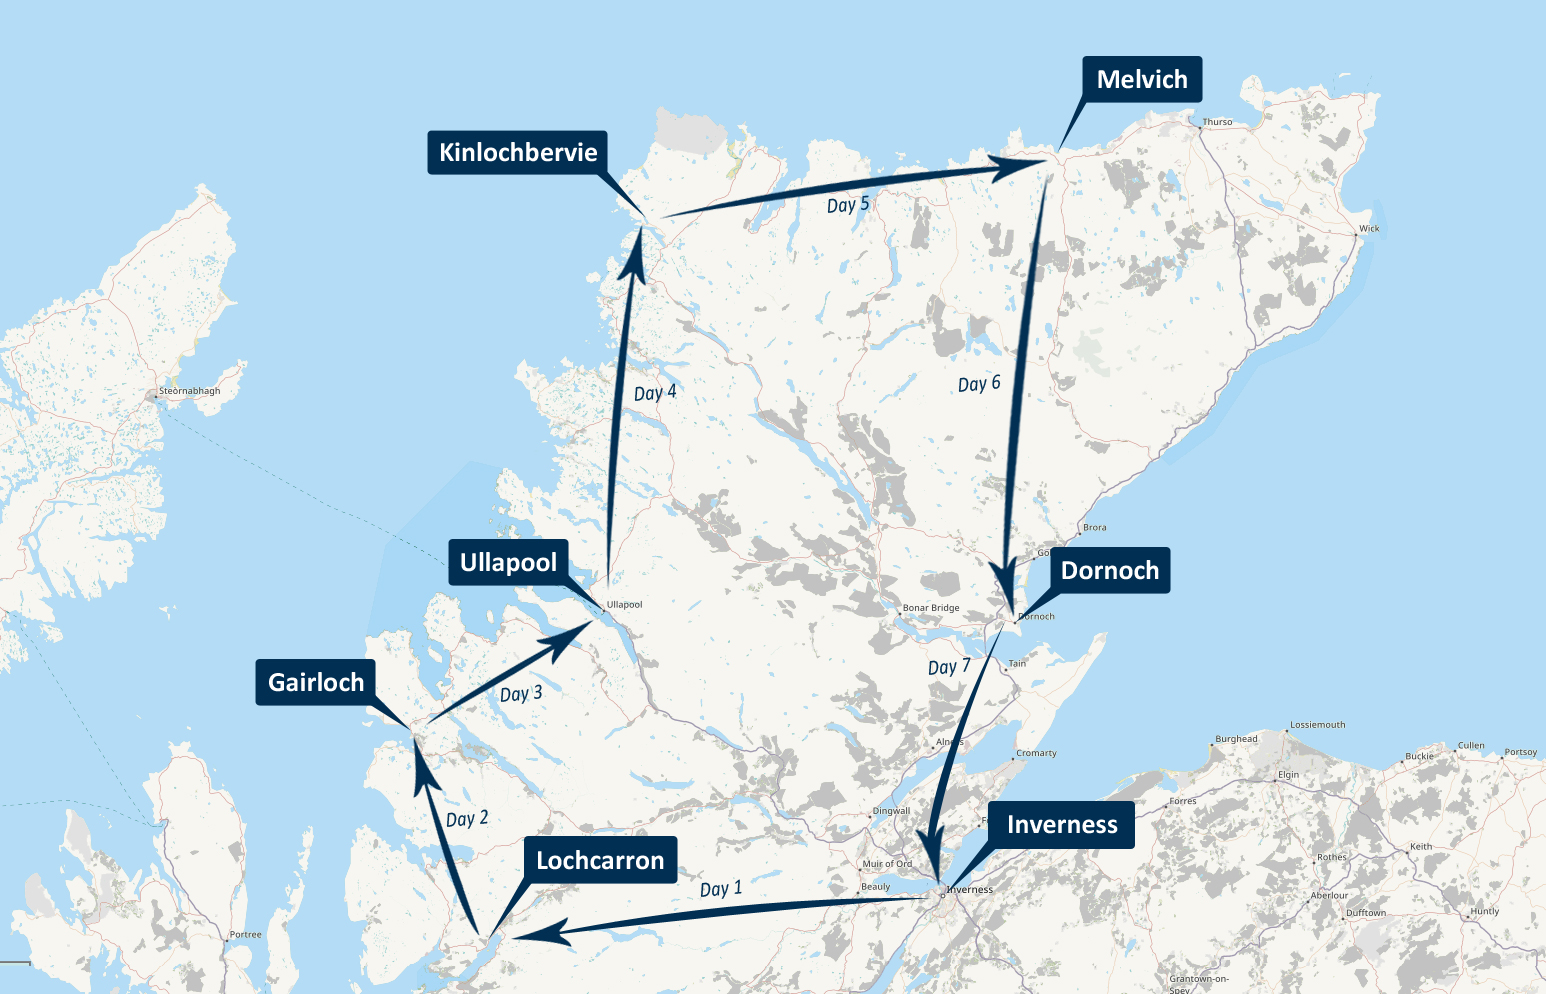 NC500 Pedal Nation Cycle Tour